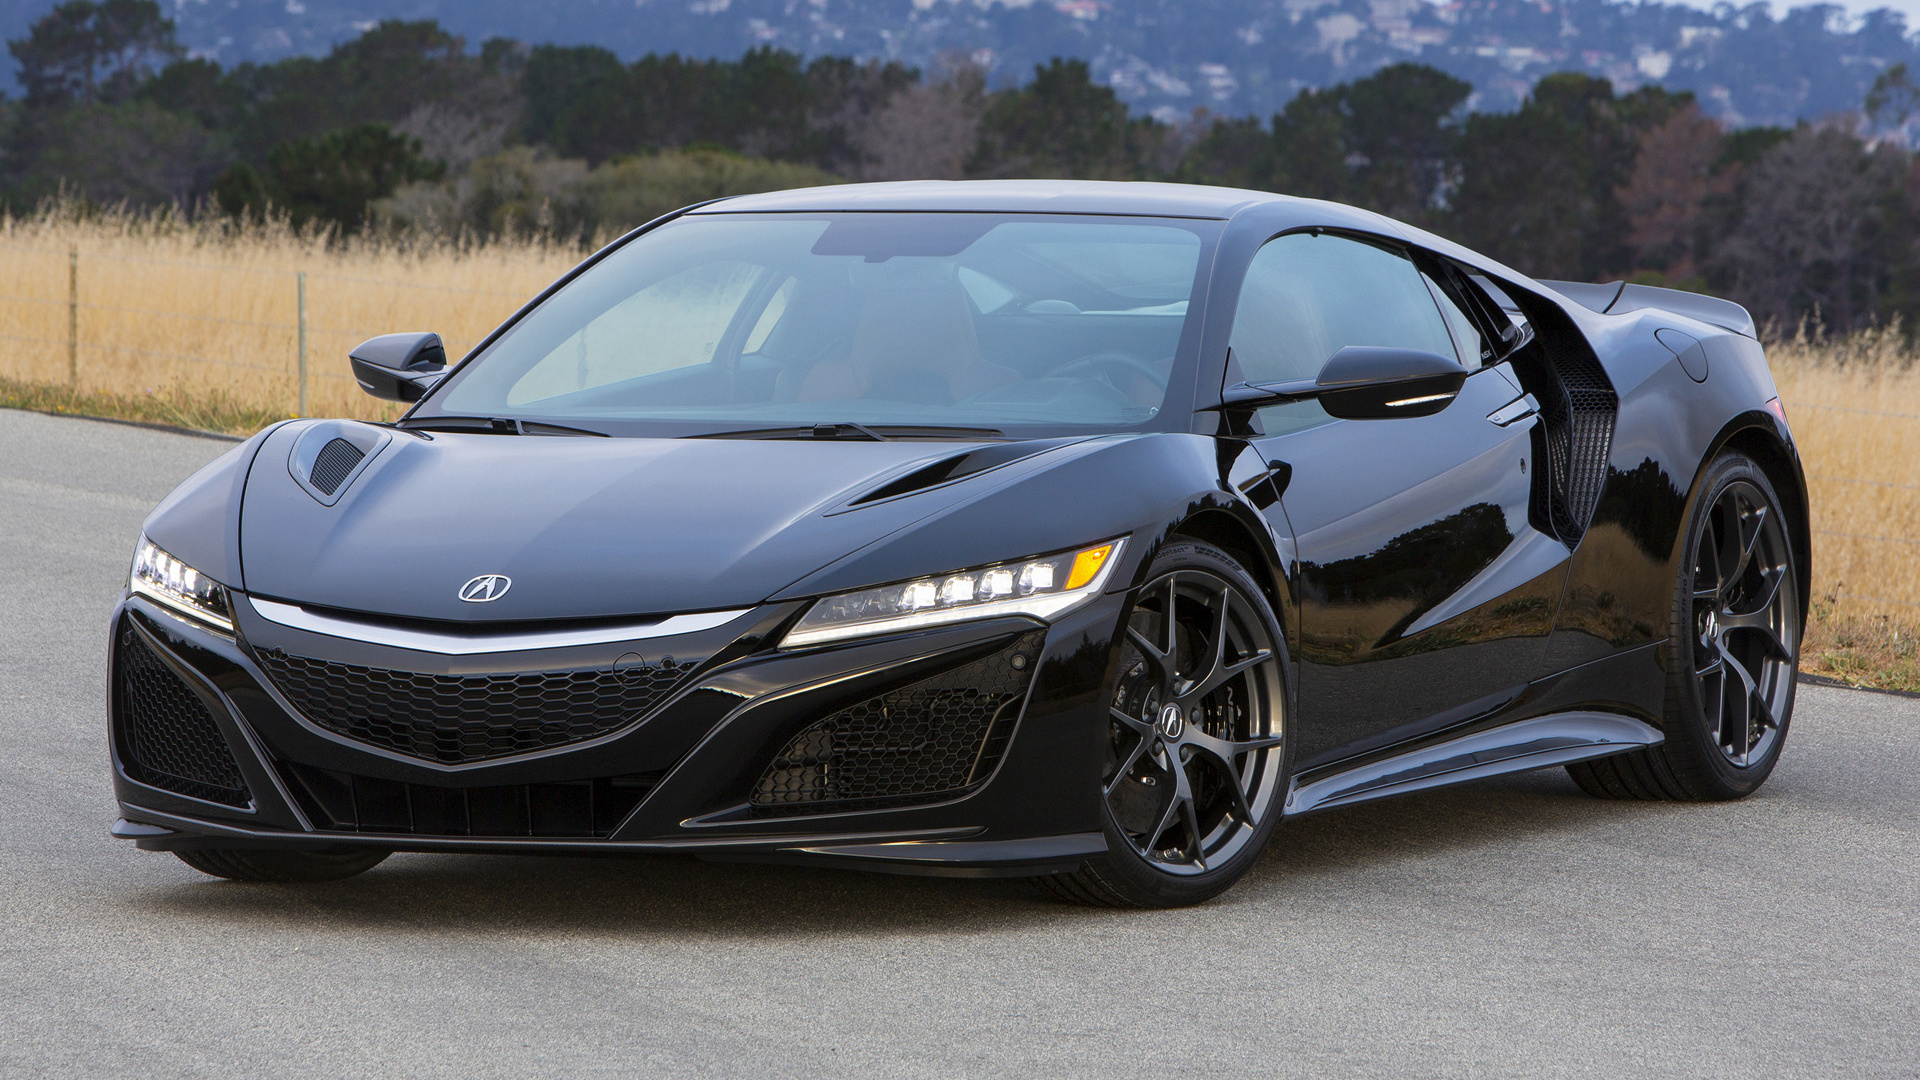 Acura Nsx Backgrounds 1920x1080